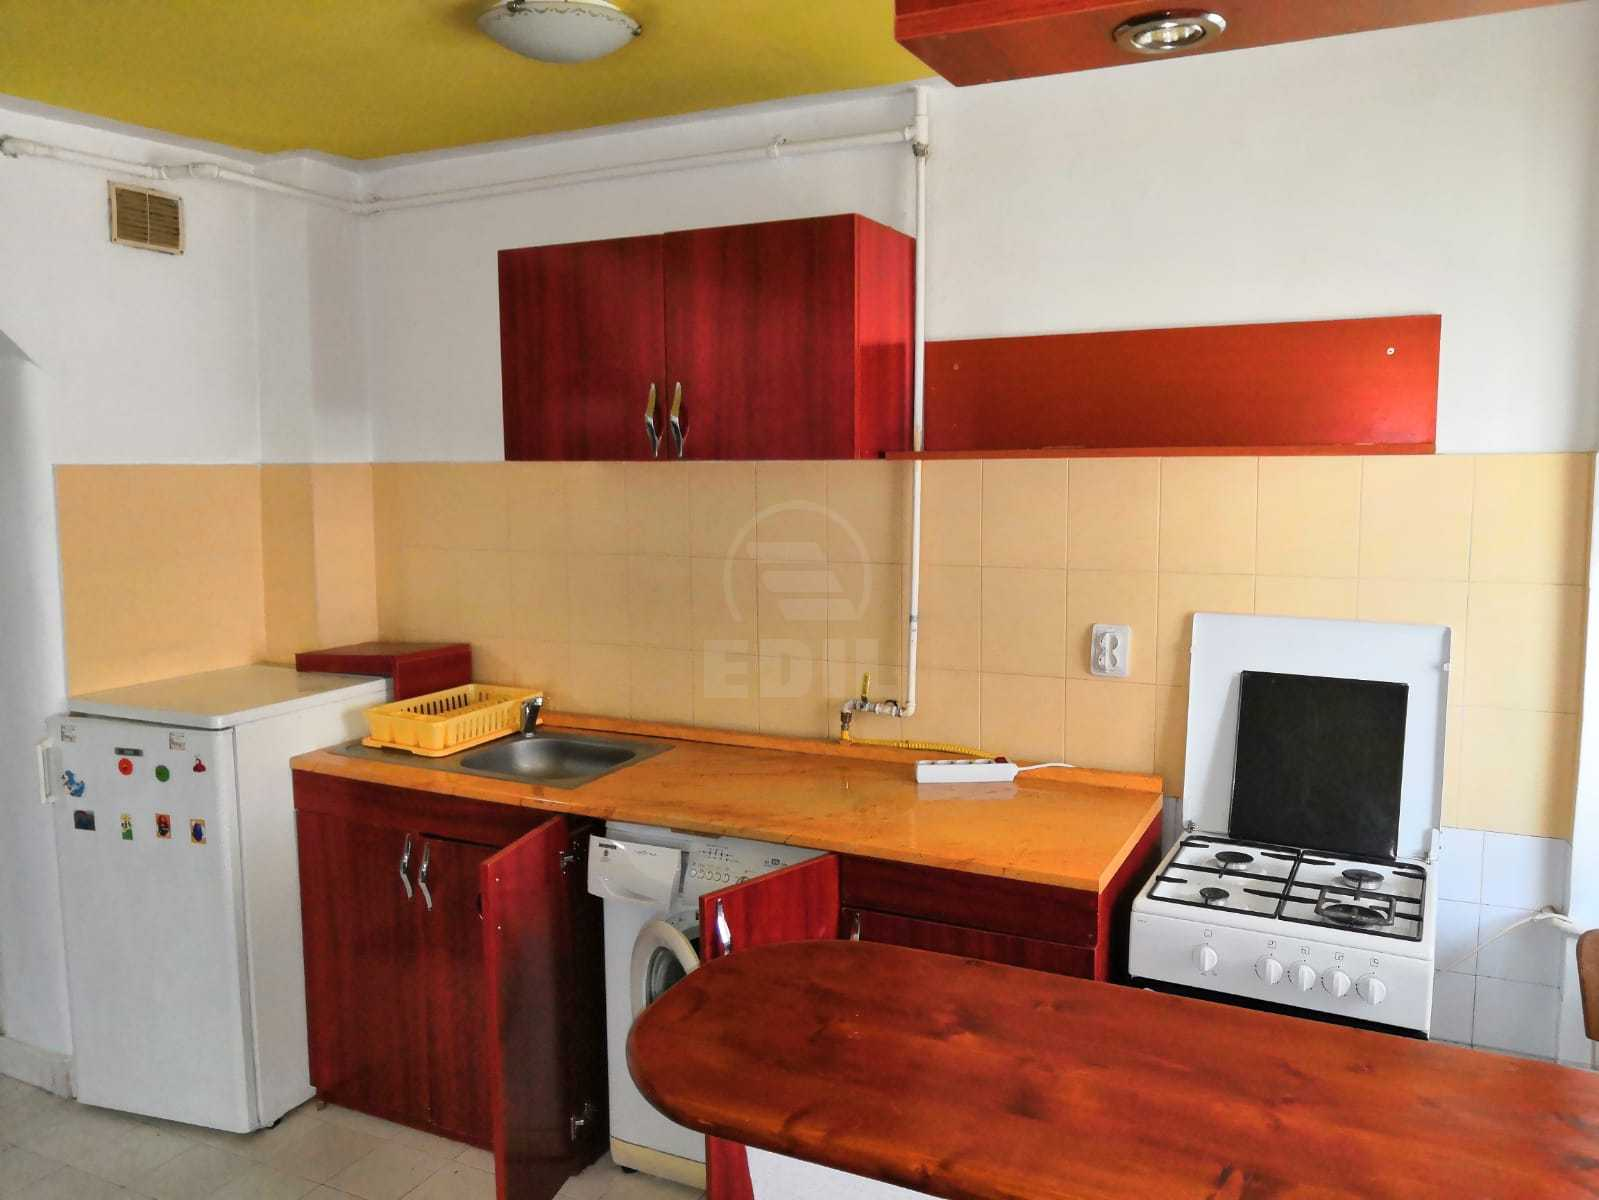 Apartment for sale a room, APCJ298924-5